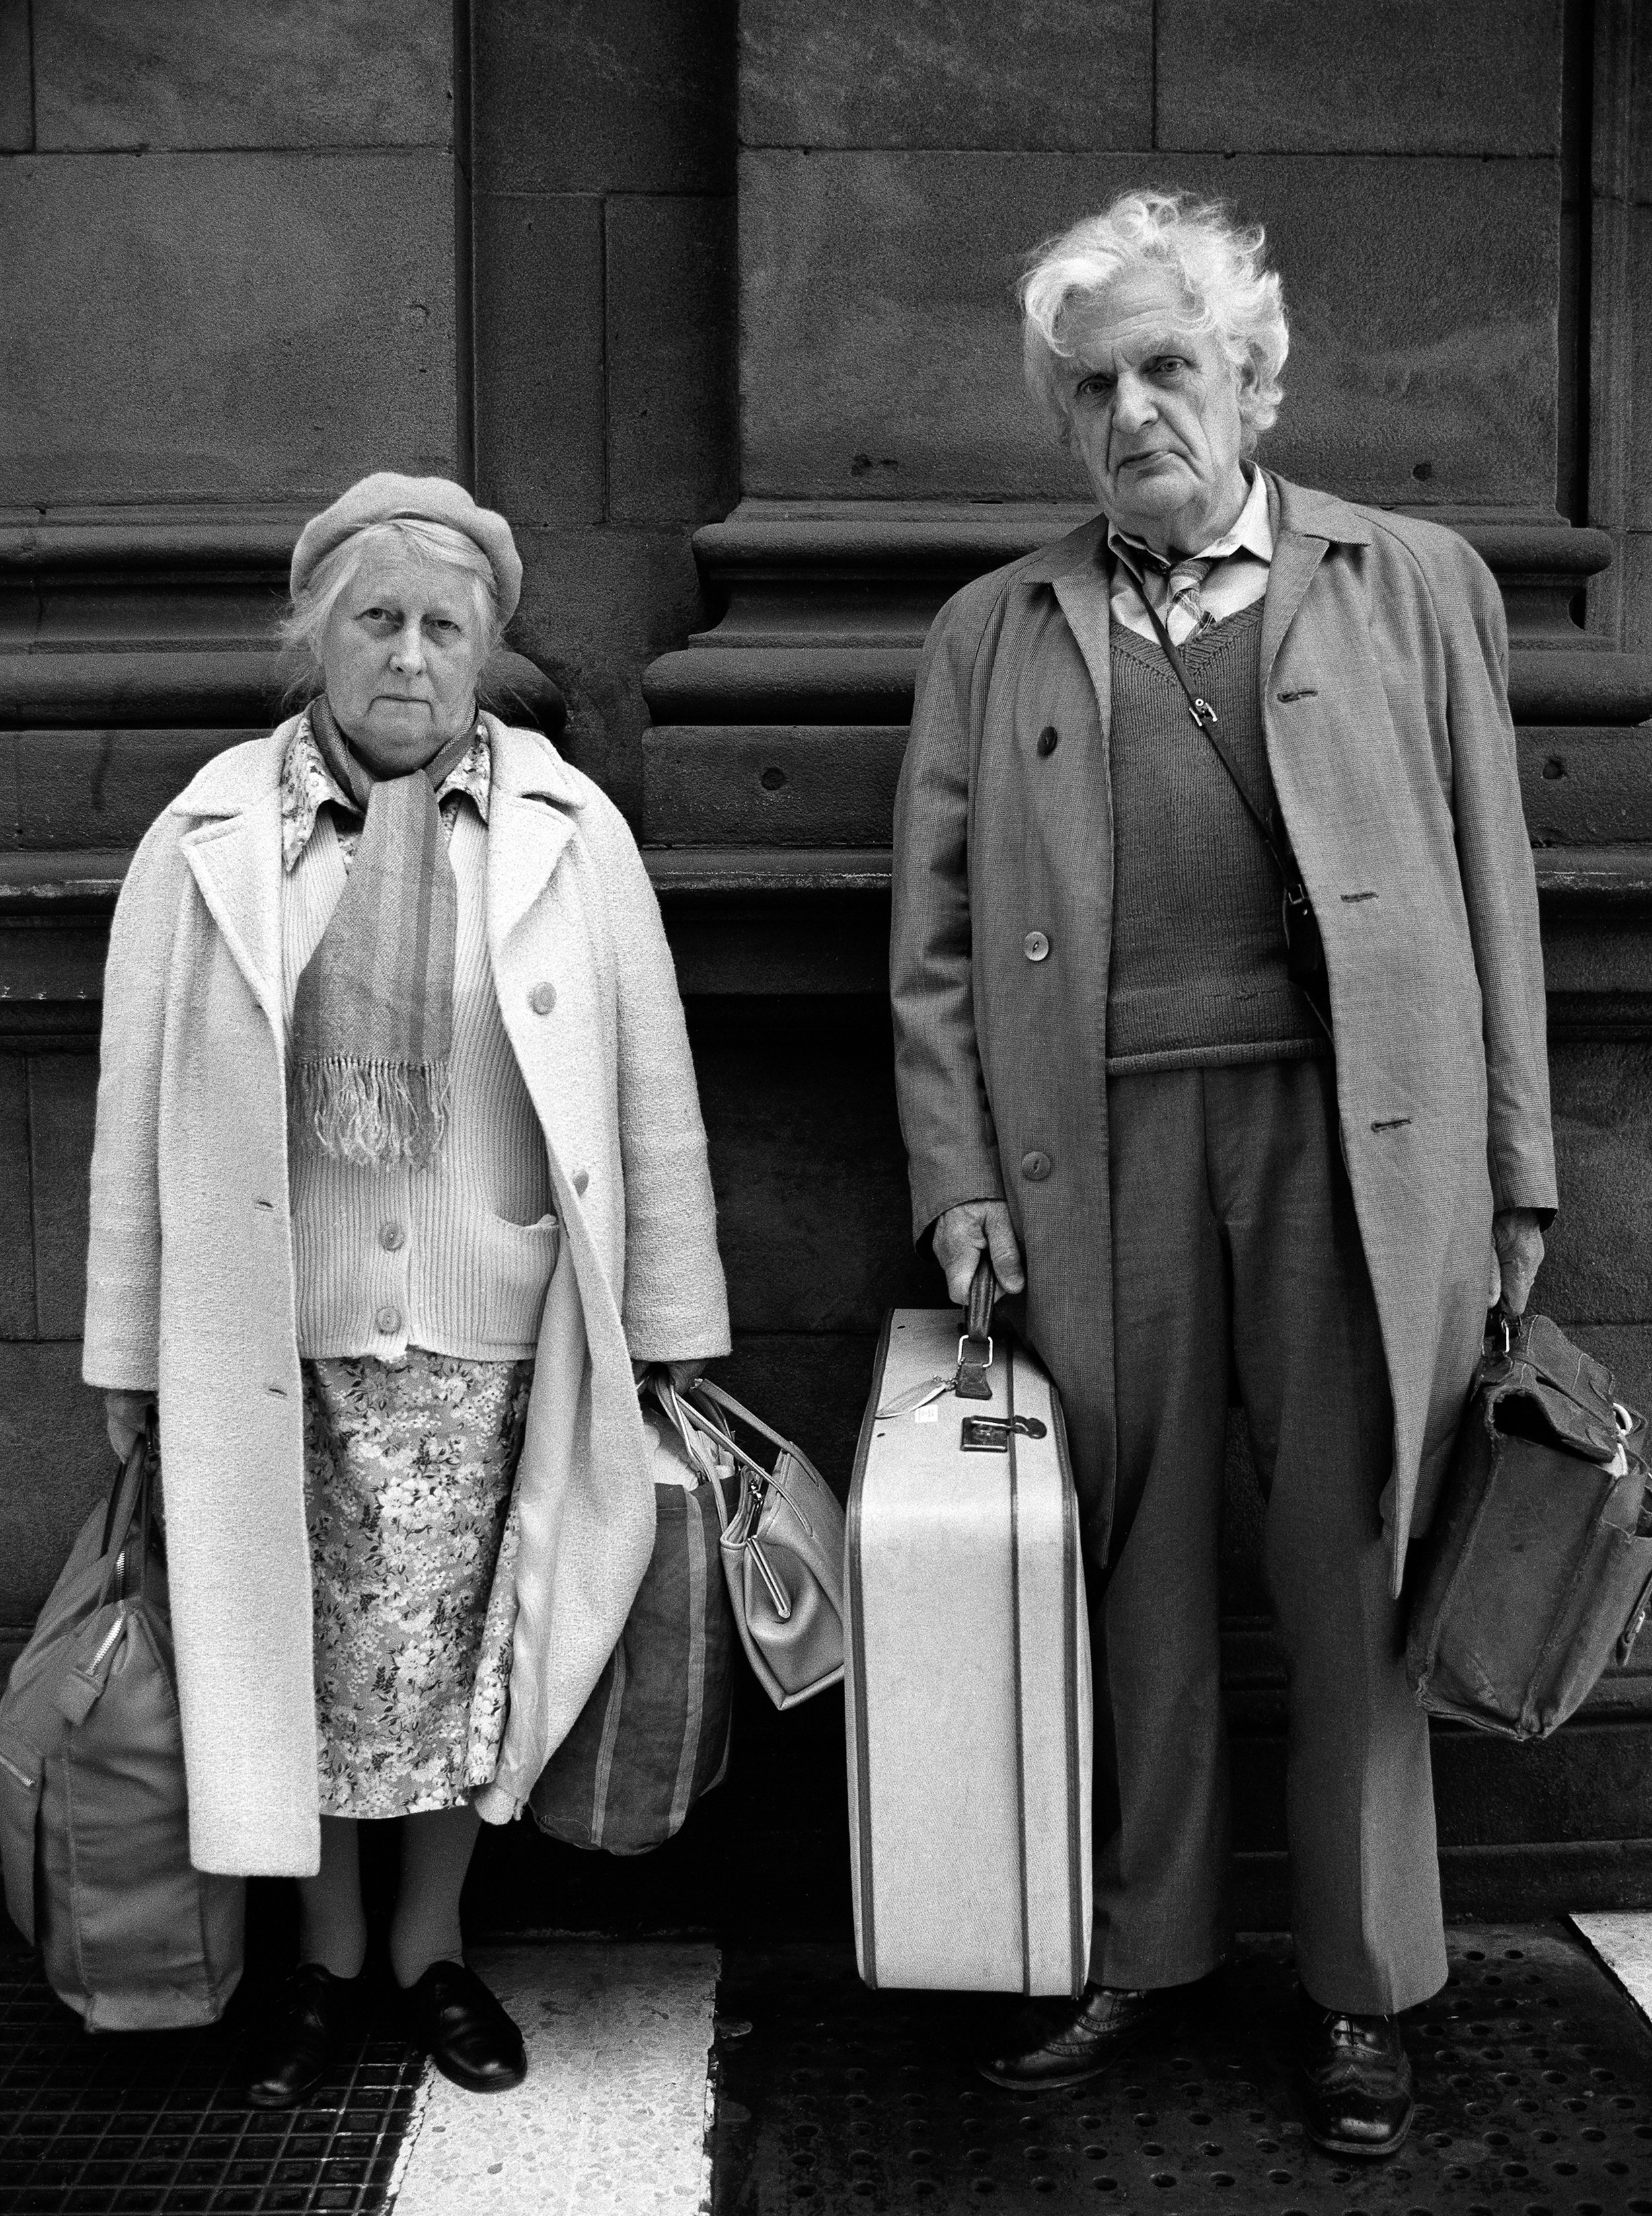 Tricia_Malley_Old_Couple.jpg